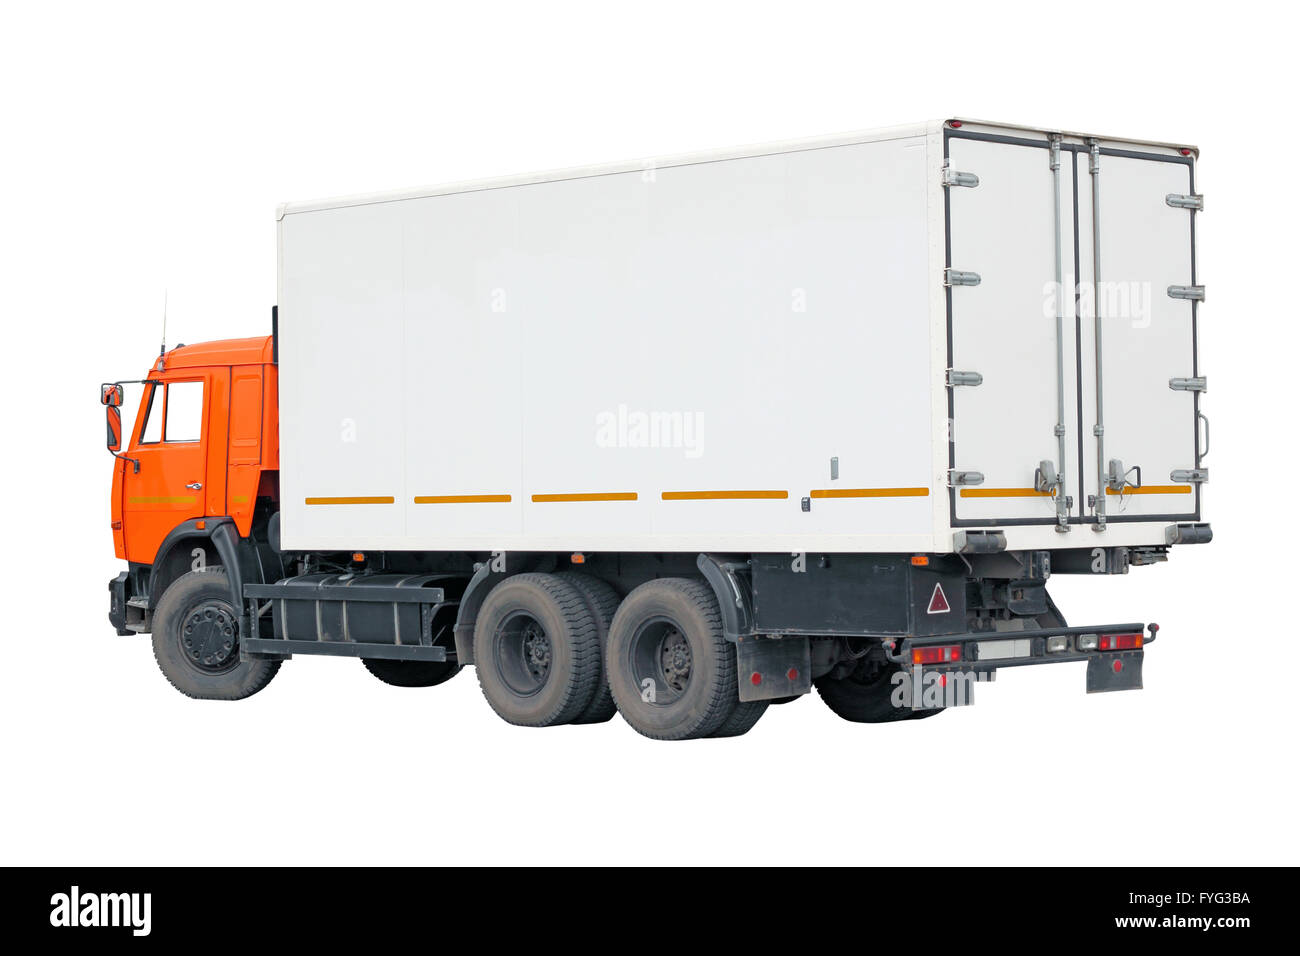 truck with a container on a white background. - Stock Image